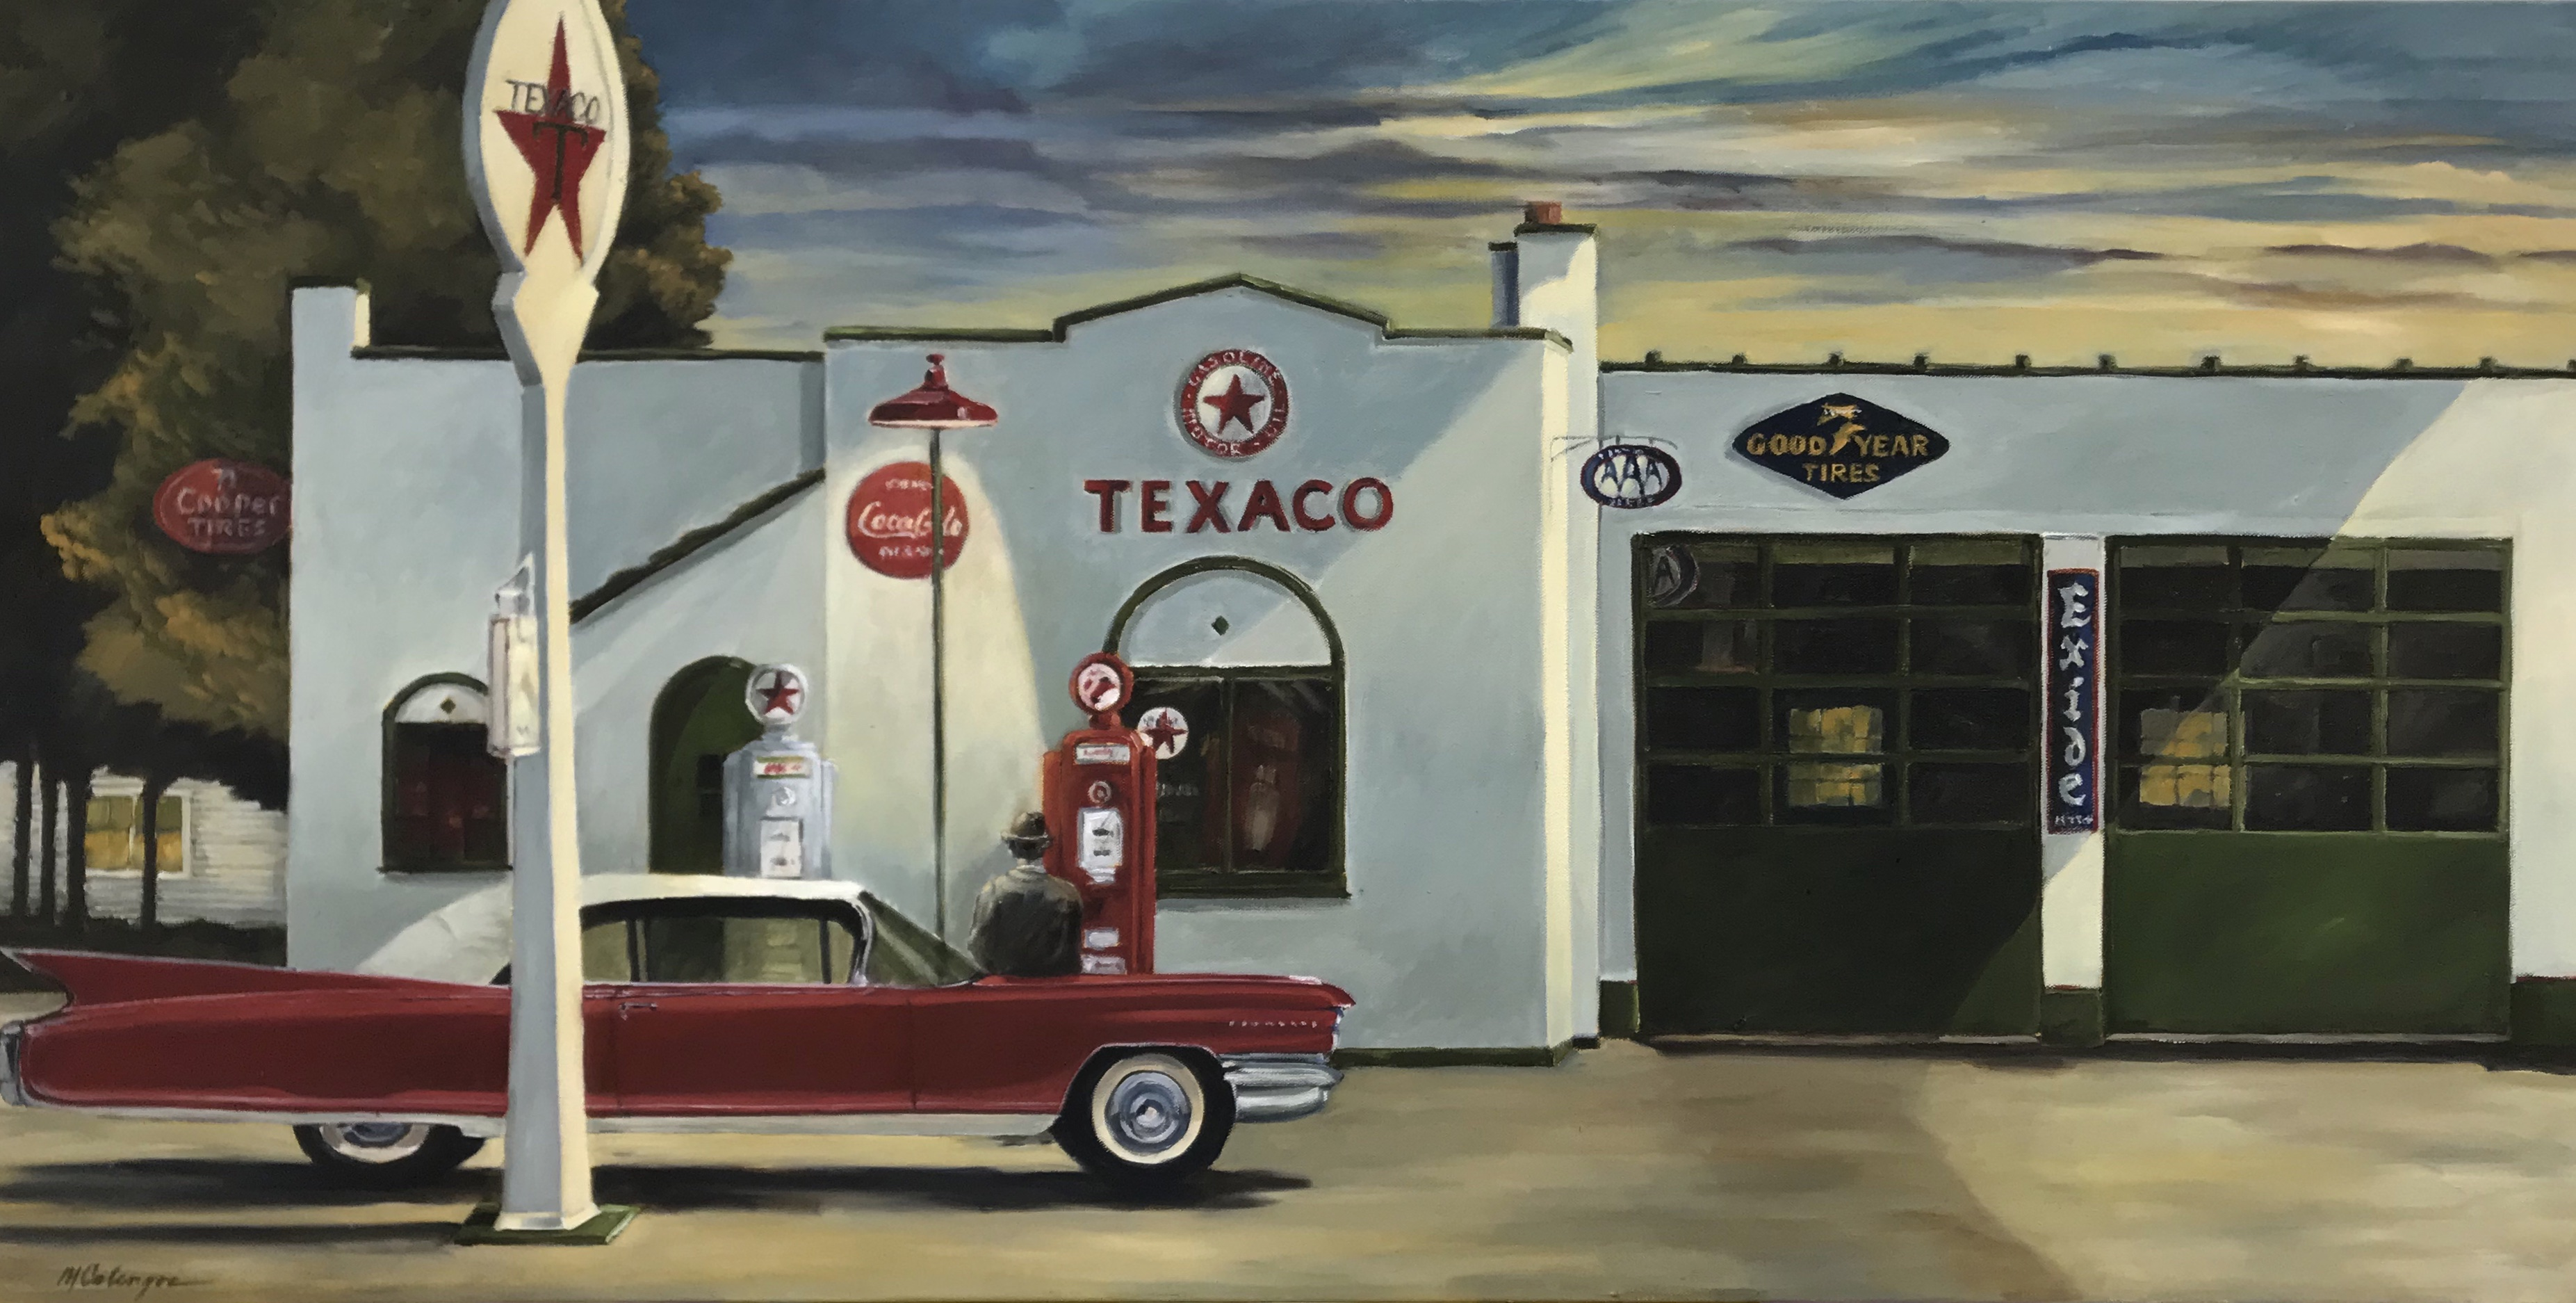 #fuelstation #gasstation #texaco #cadillac #antiqueauto #gaspump #landscape-painting #sunset #gas-oil